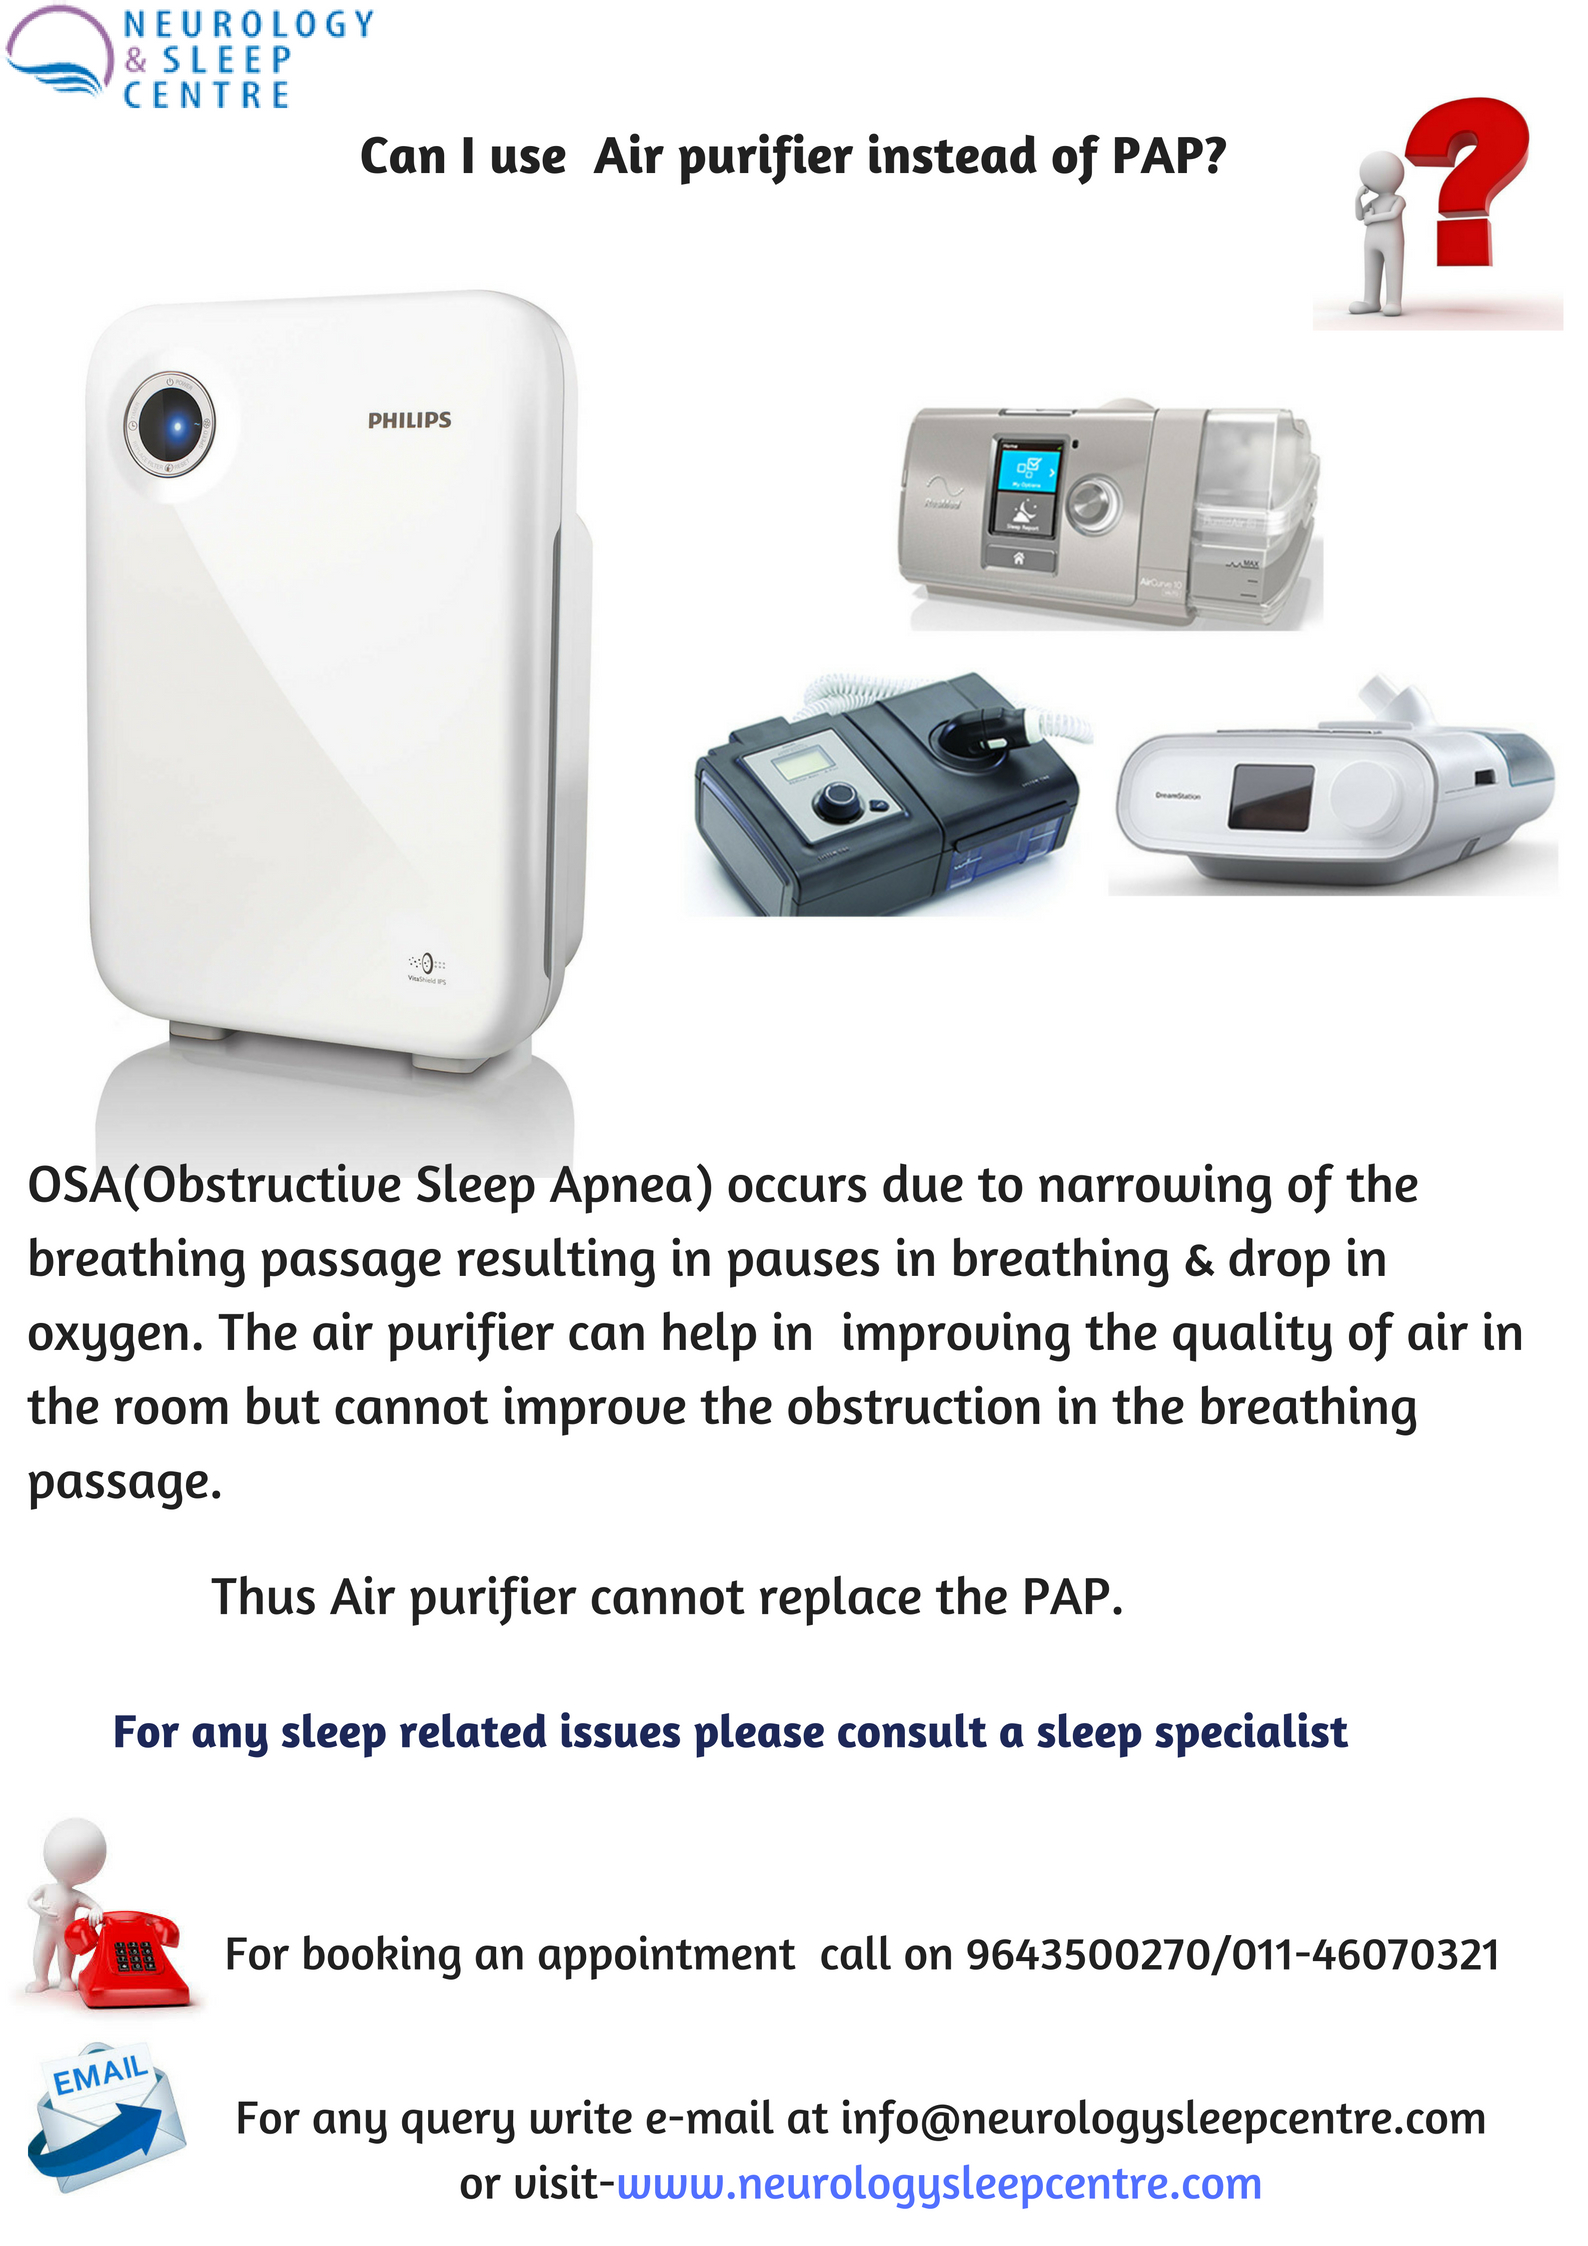 Can one use Air purifier instead of PAP (3)